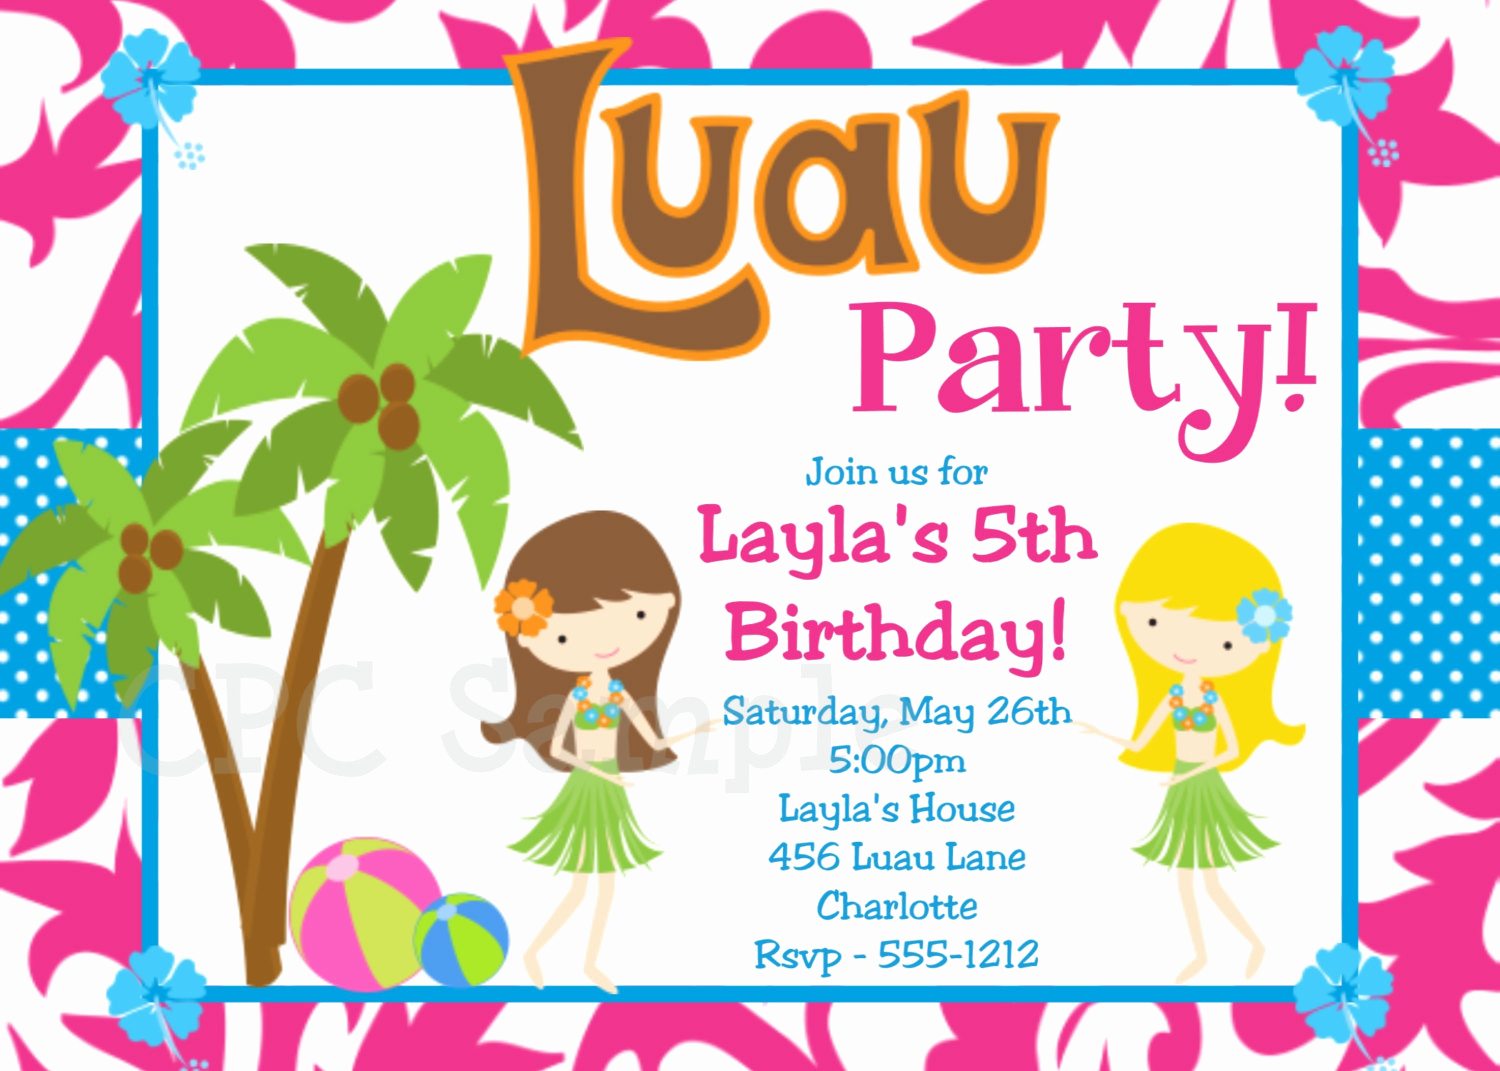 5th Birthday Invitation Wording Lovely 5th Luau Birthday Party Invitation Wording – Free